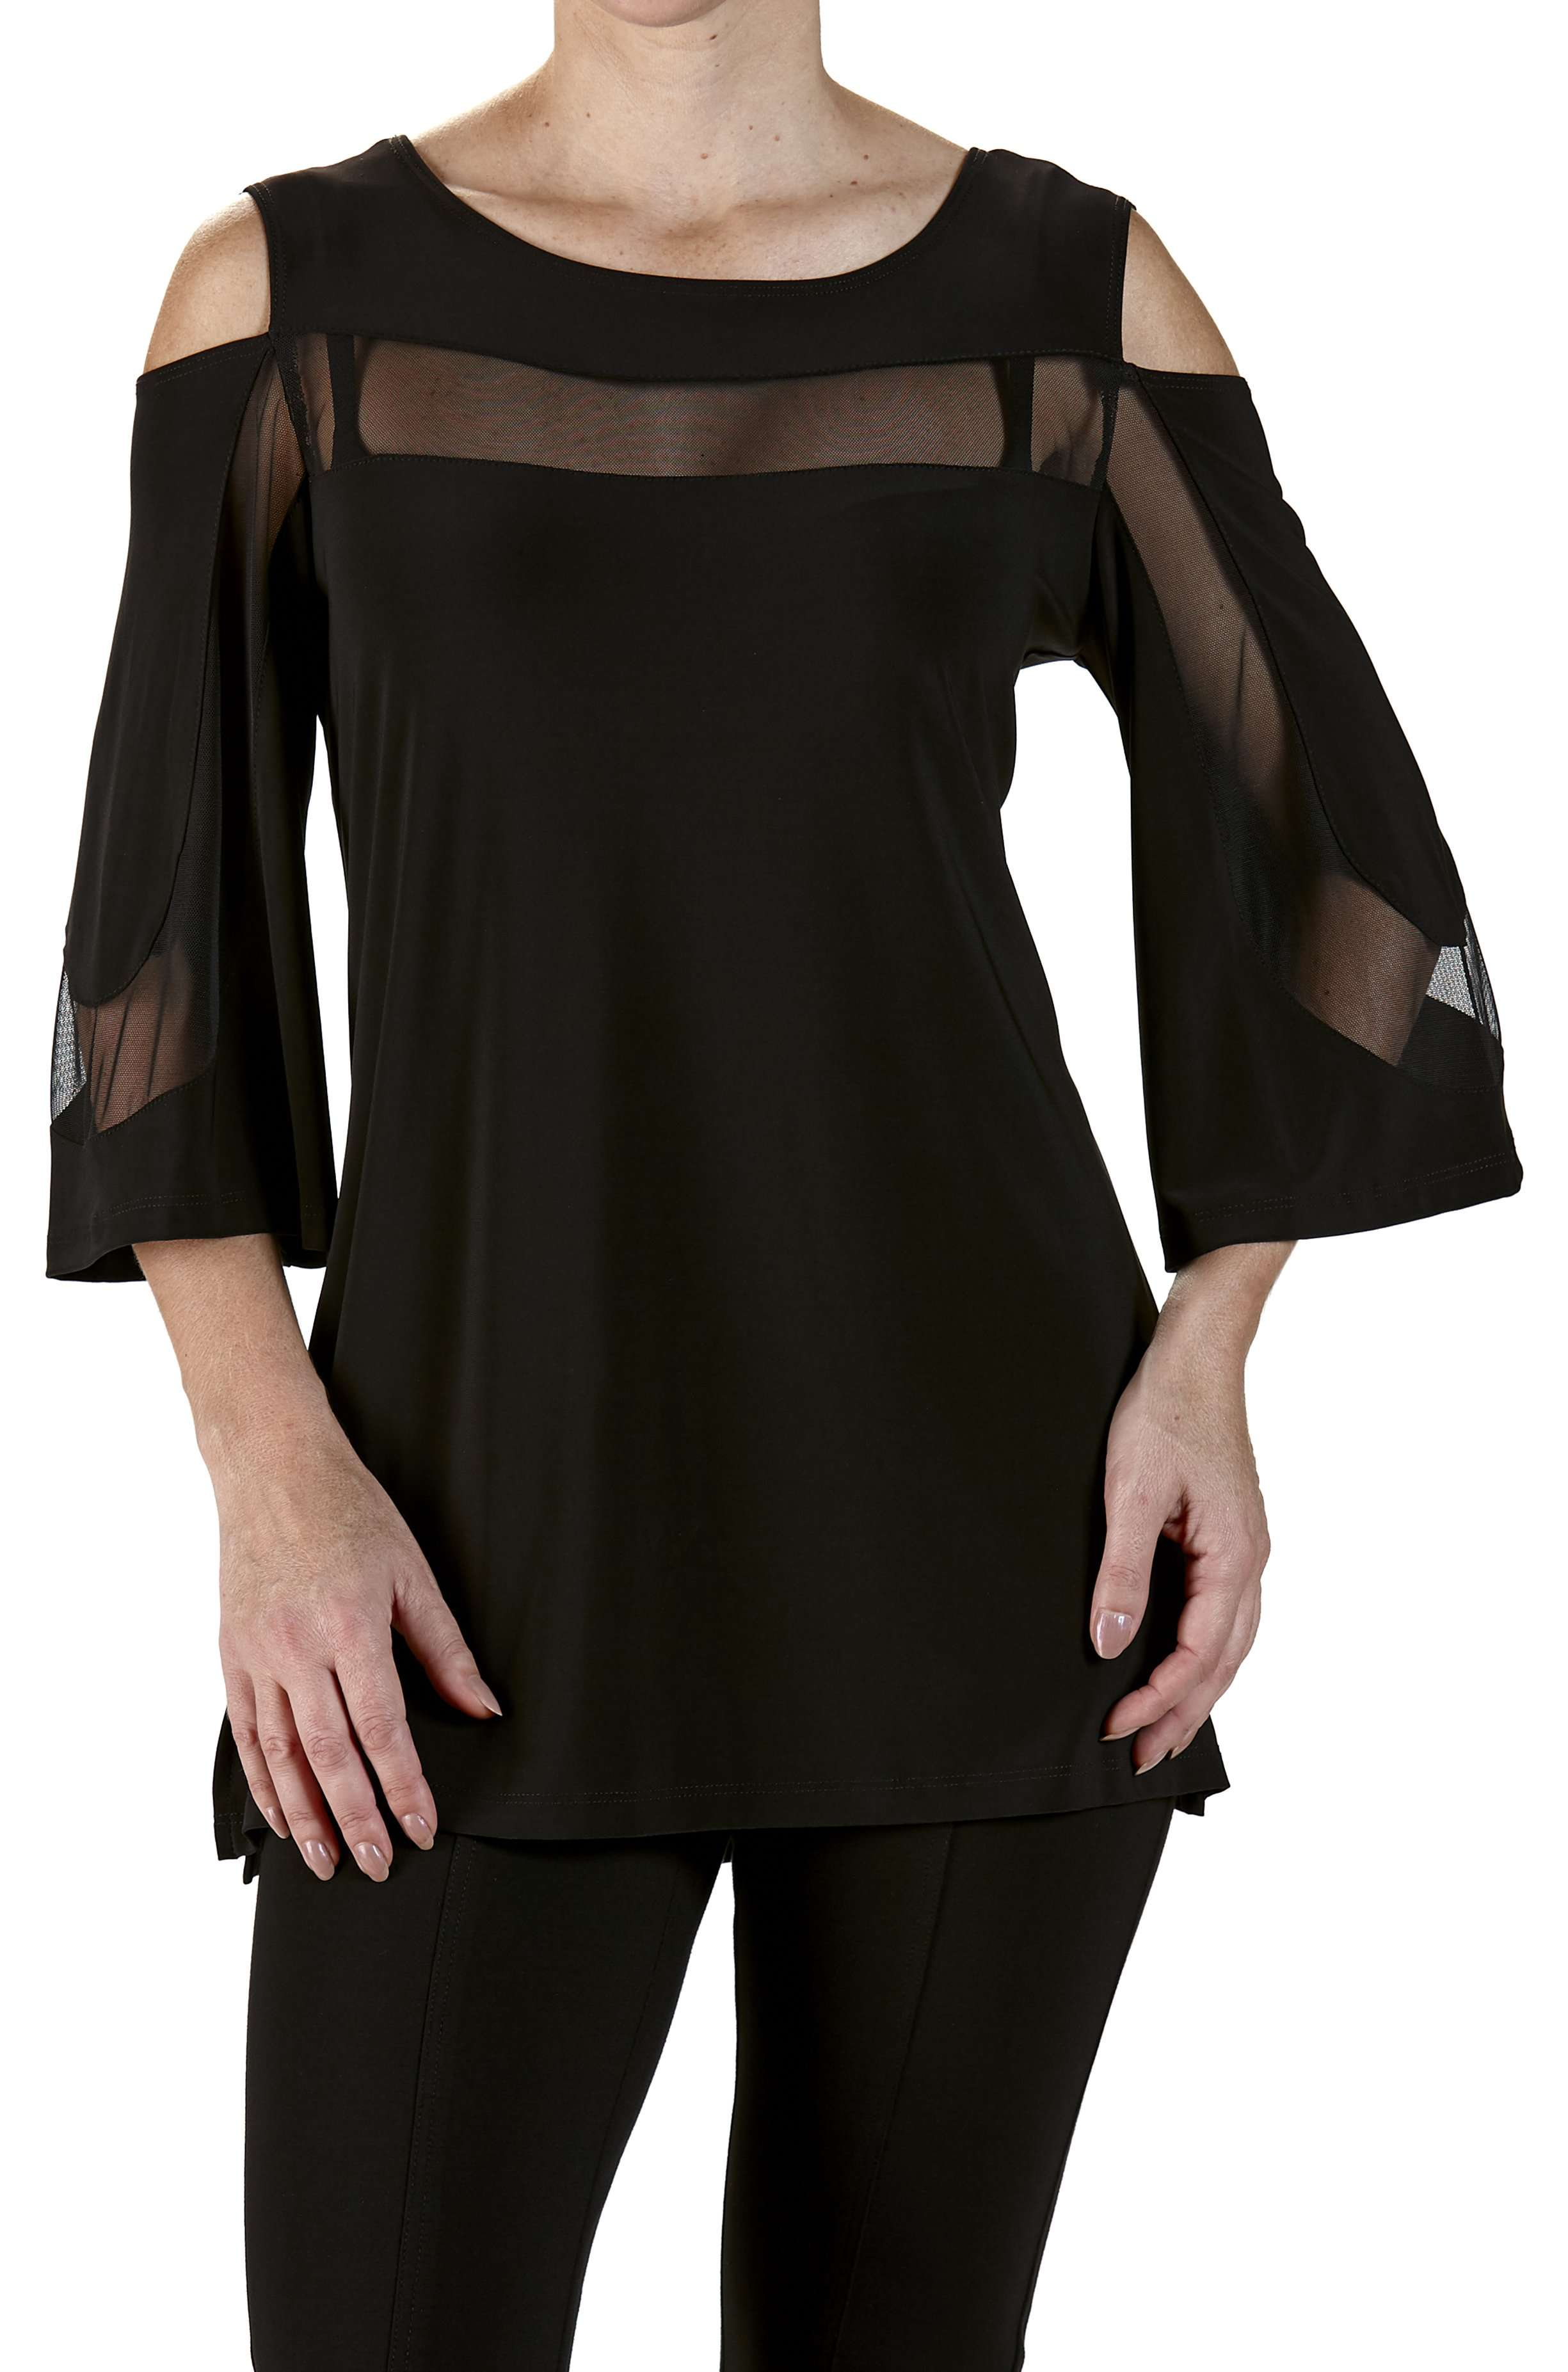 Top Black Tunic With Mesh Trim Open Shoulder - Yvonne Marie